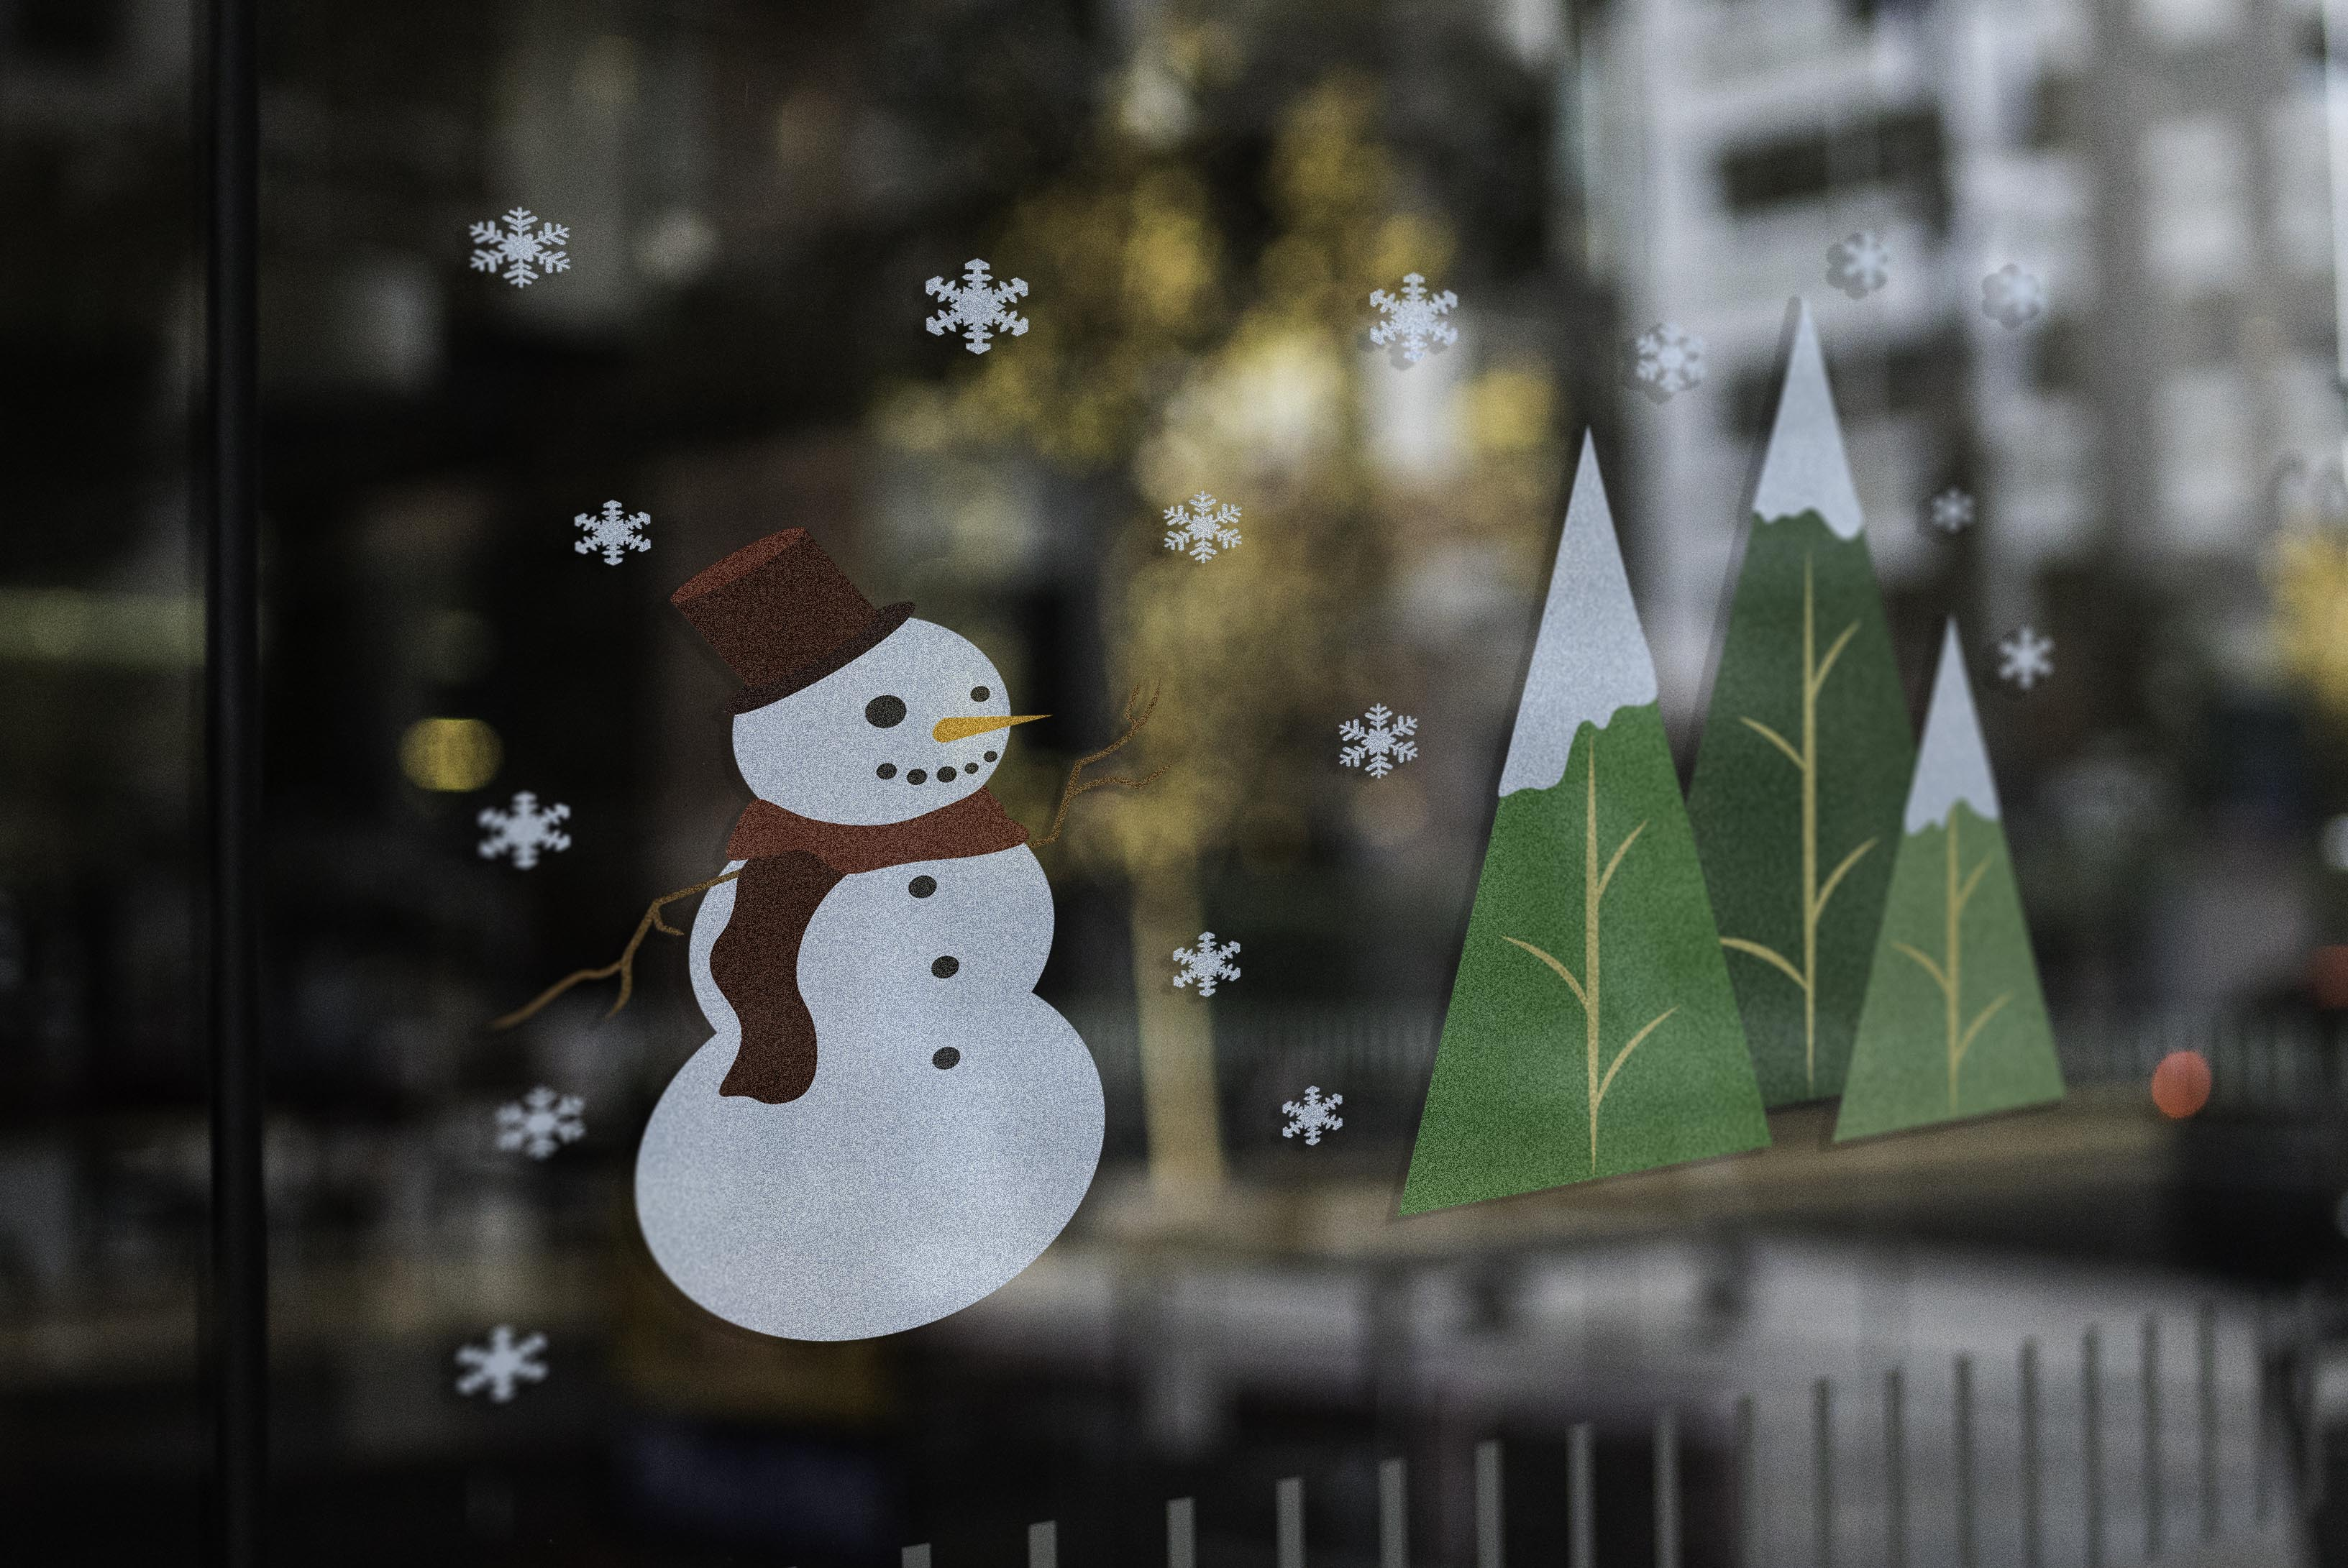 Winter Scene Window Vinyl Mockup